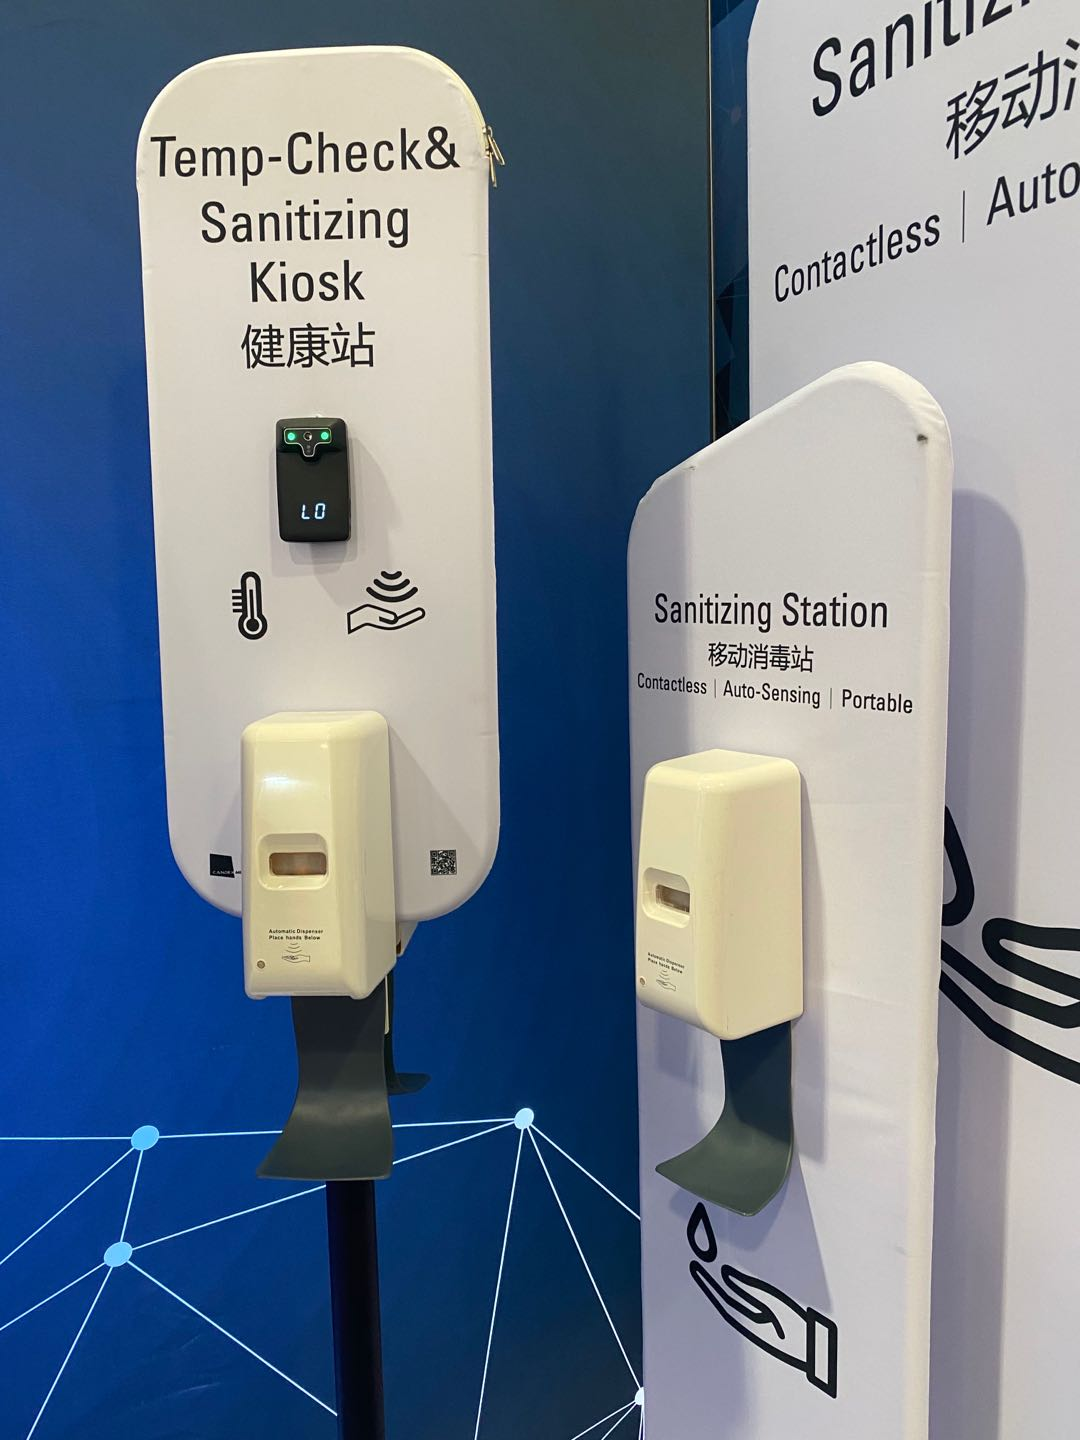 sanitizing station, sanitizing kiosk